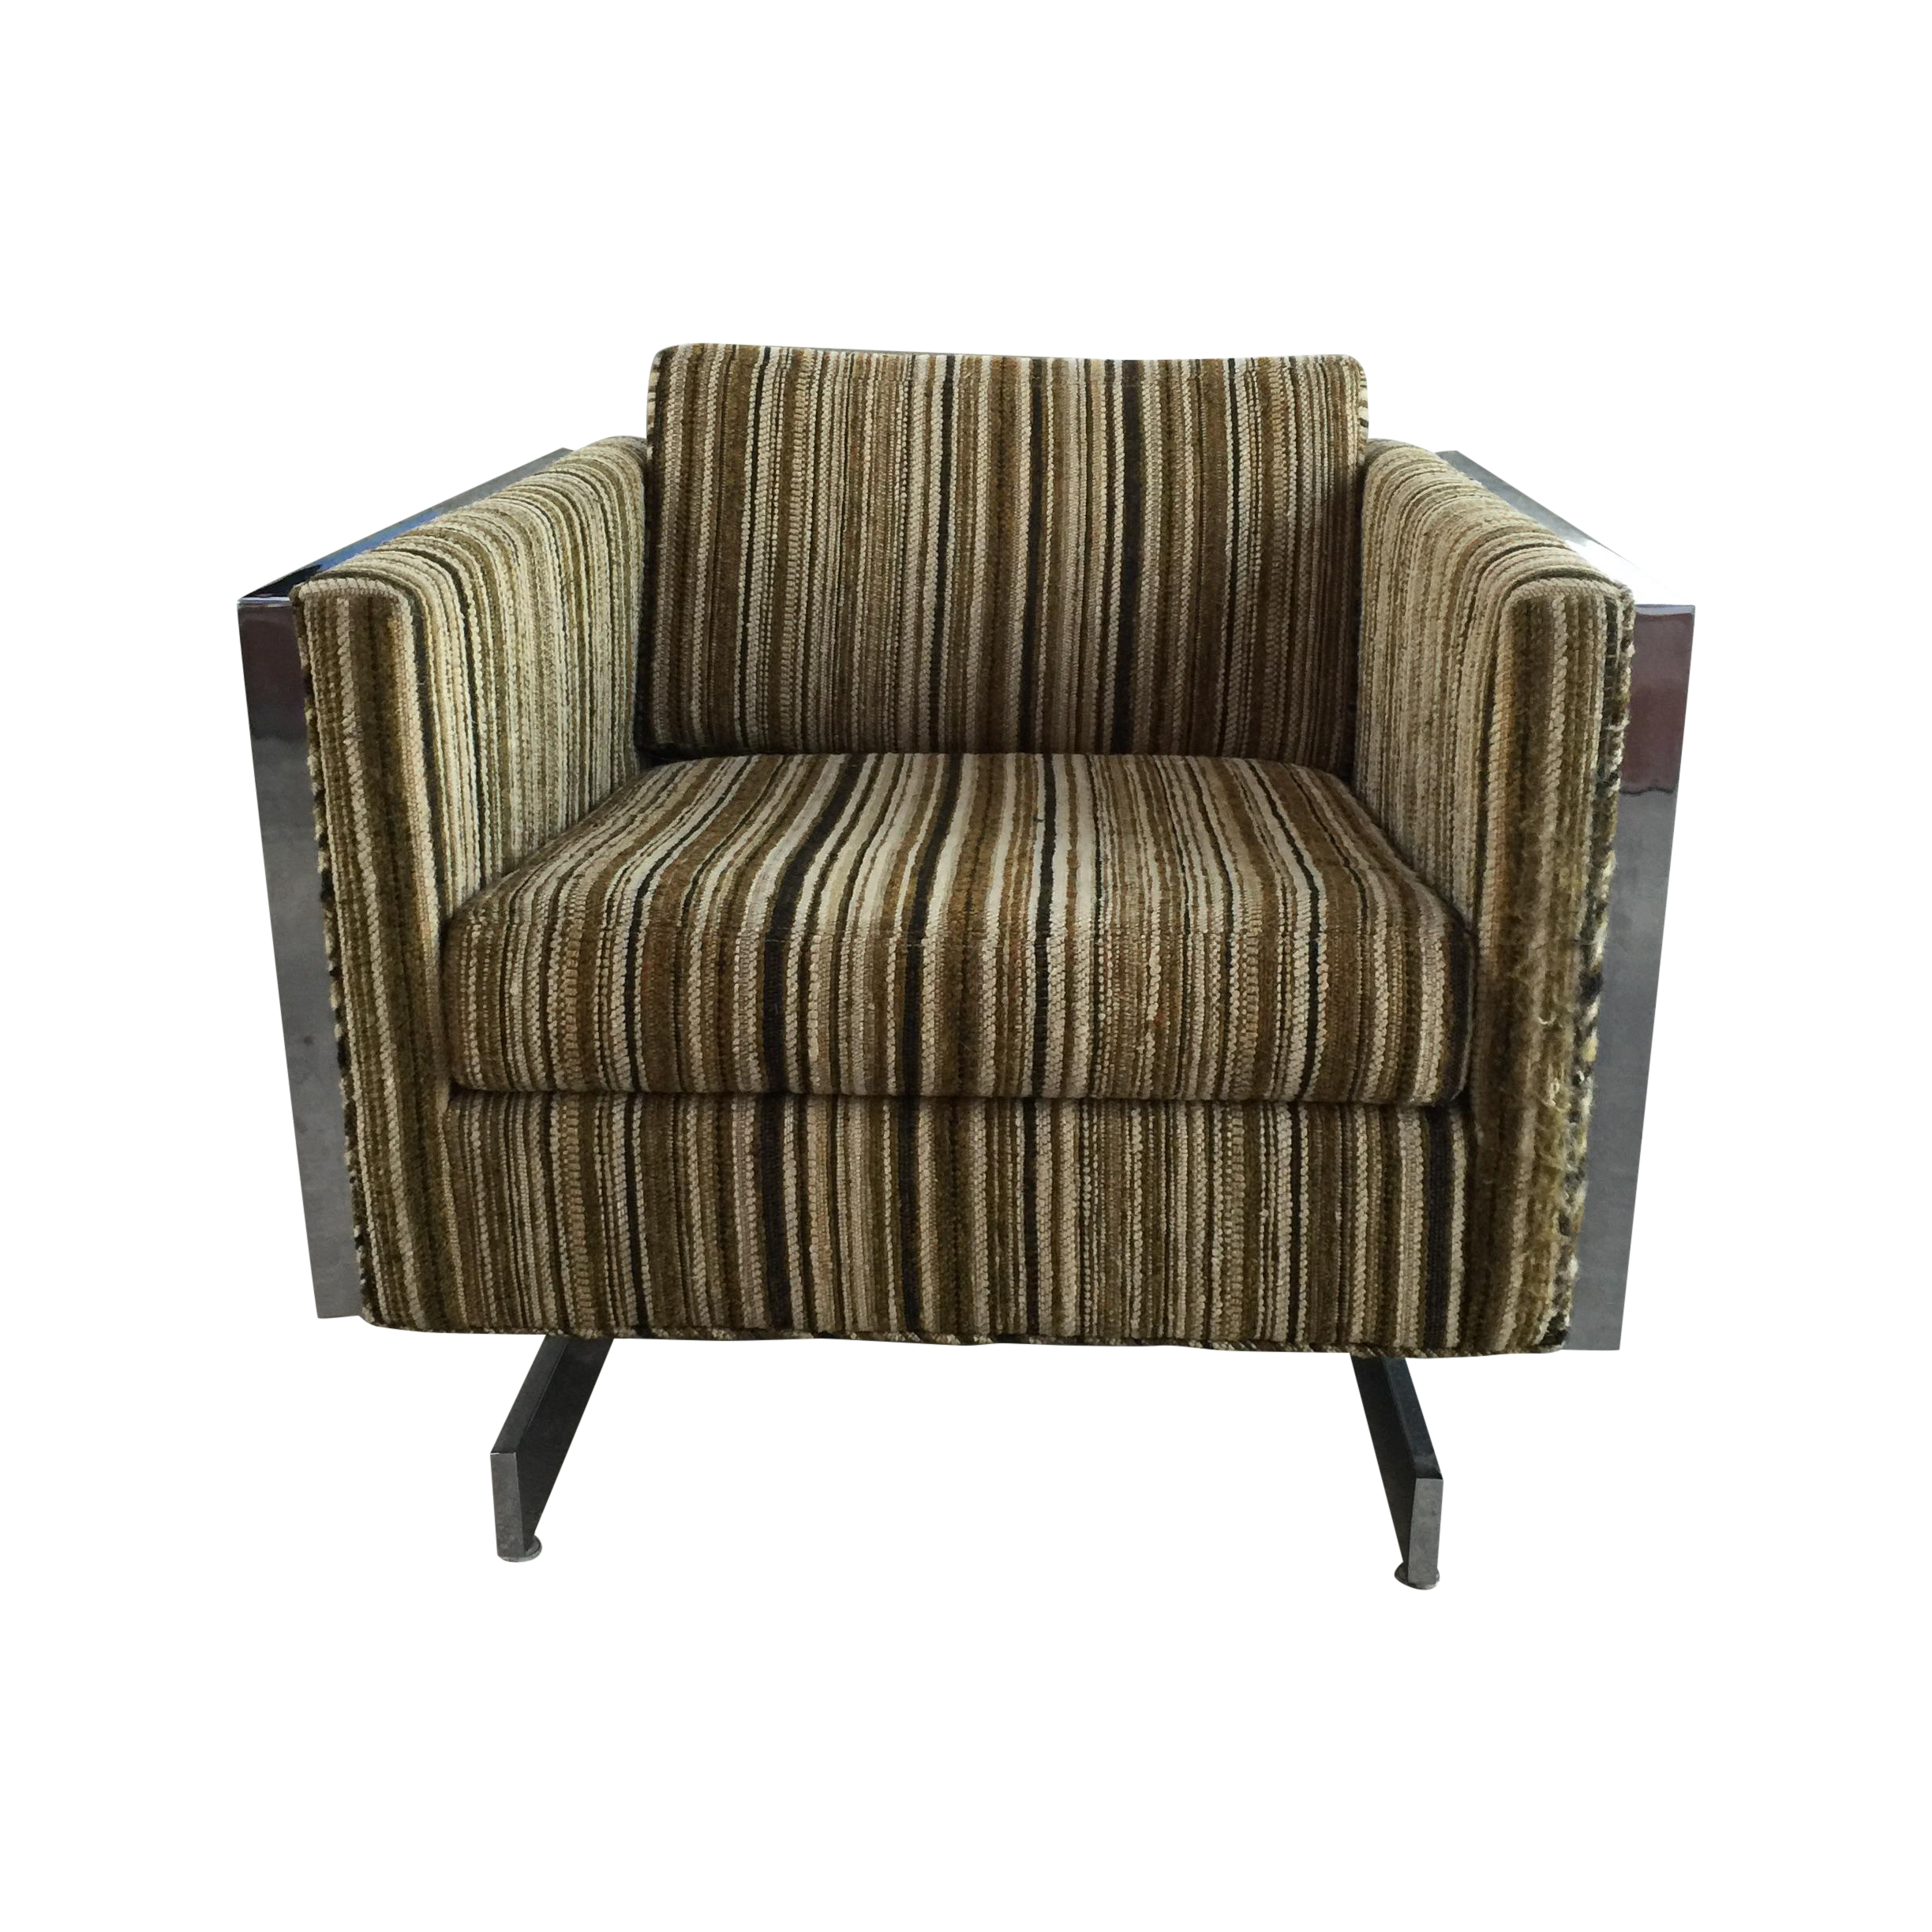 Charmant Patrician Furniture Co. Chrome Frame Lounge Chair For Sale